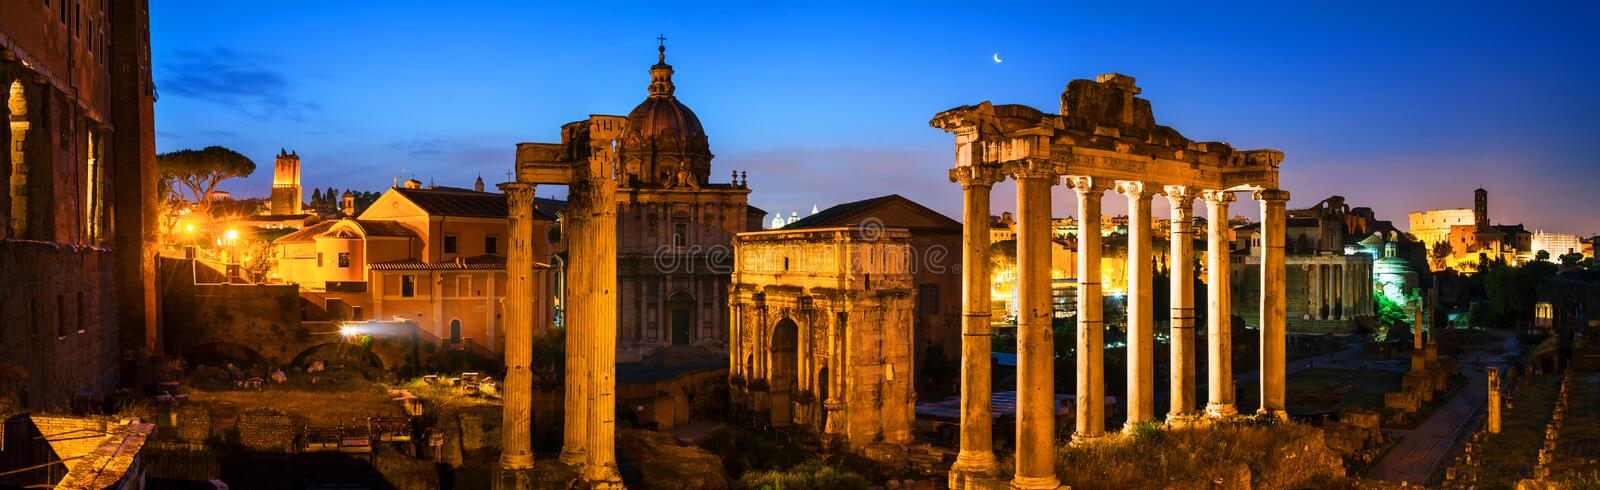 Aerial view of illuminated Roman forum in Rome, Italy at night royalty free stock photo